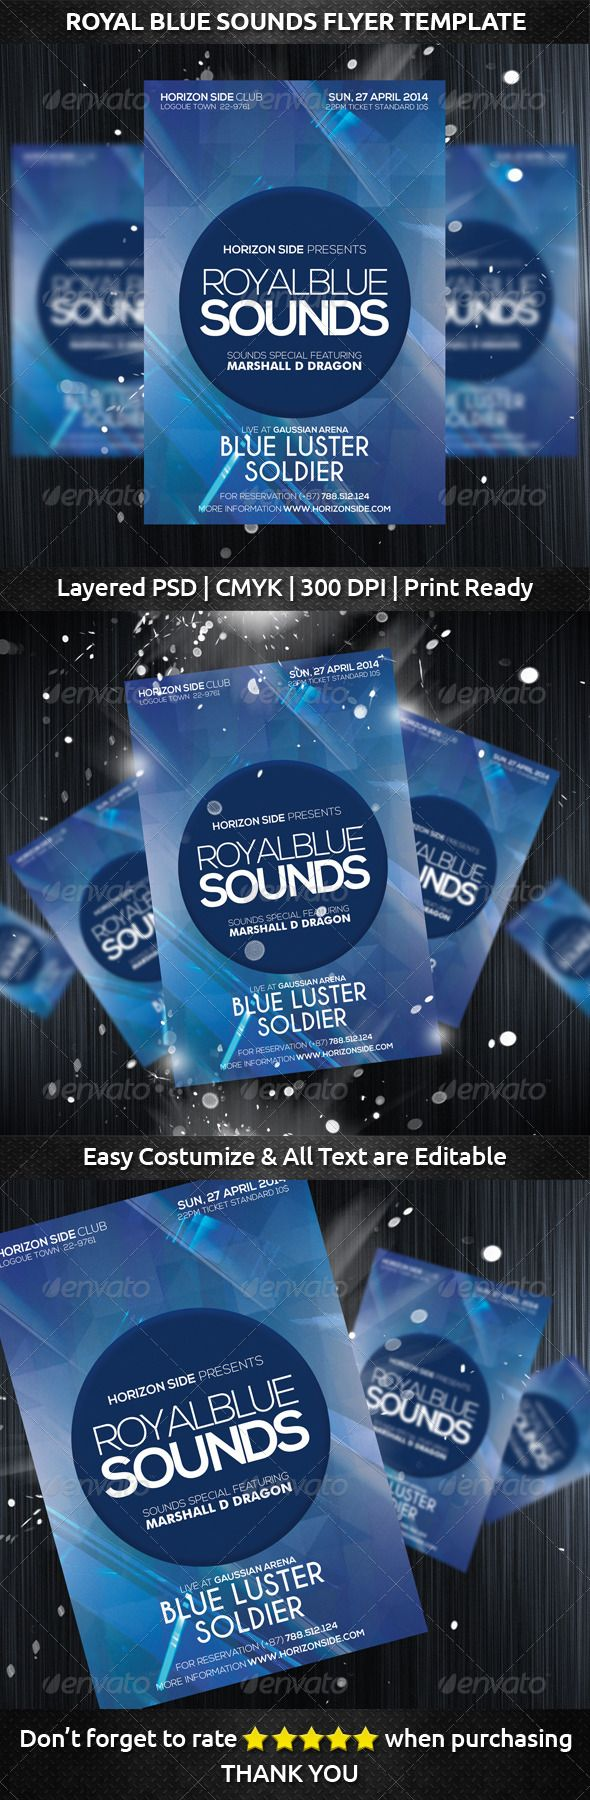 Royal Blue Sounds Flyer Template ~Spesification  `Size : 4×6 inch with bleeds (0.25 inch)  `1 PSD Layerd and well organized layer  `Print Ready (CMYK – 300 DPI)  `Easy to Costumize and All Text are Editable